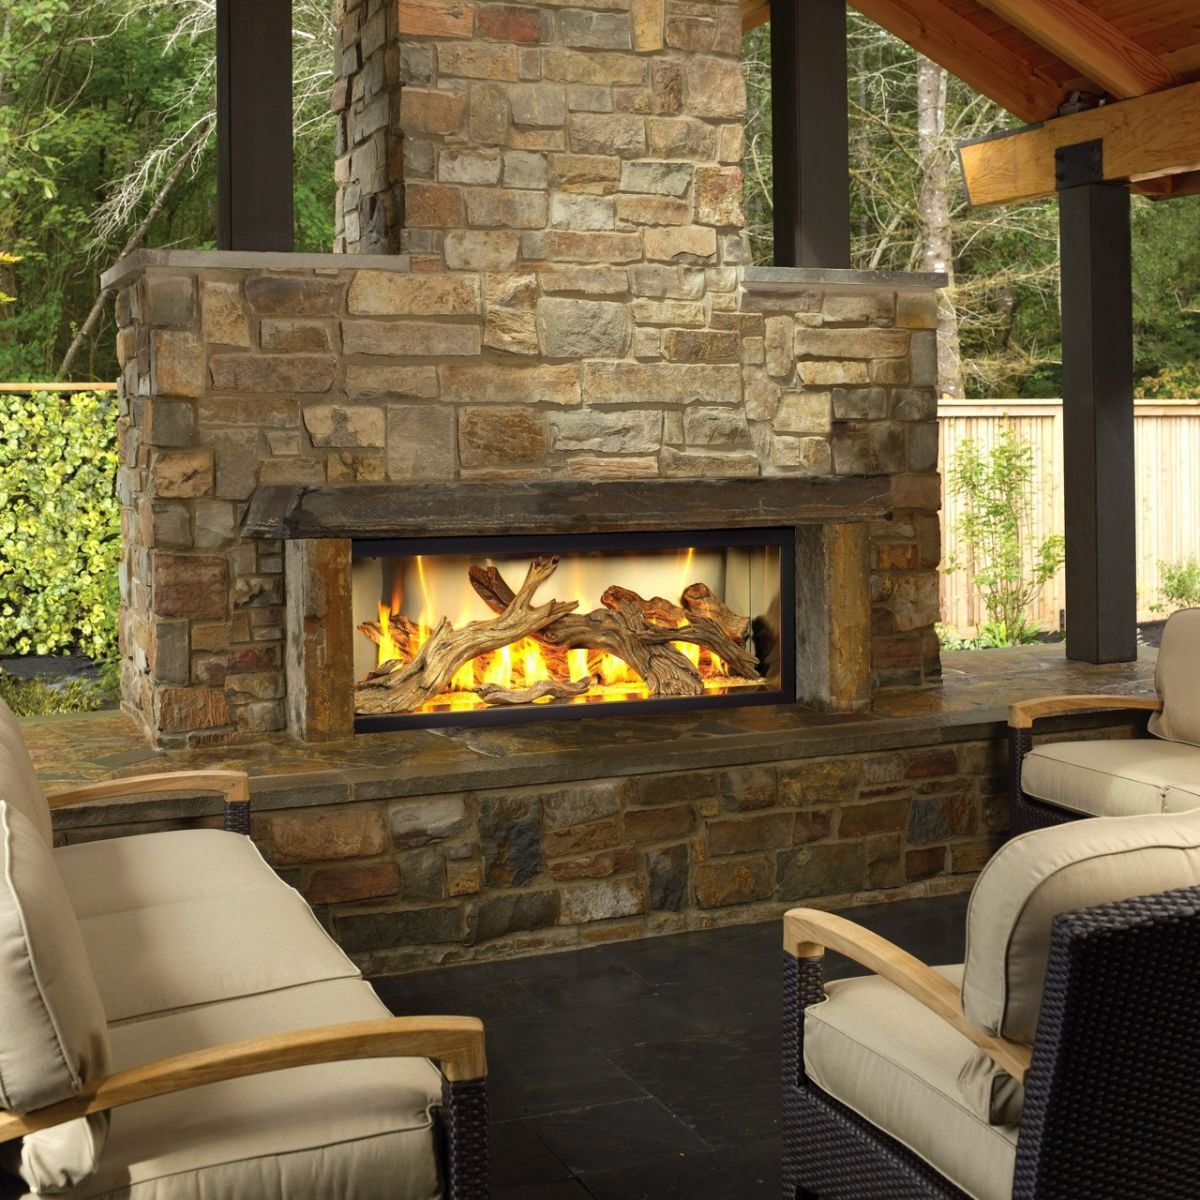 Outdoor fireplace designs colorado springs fire pits and for Outdoor patio fireplace ideas